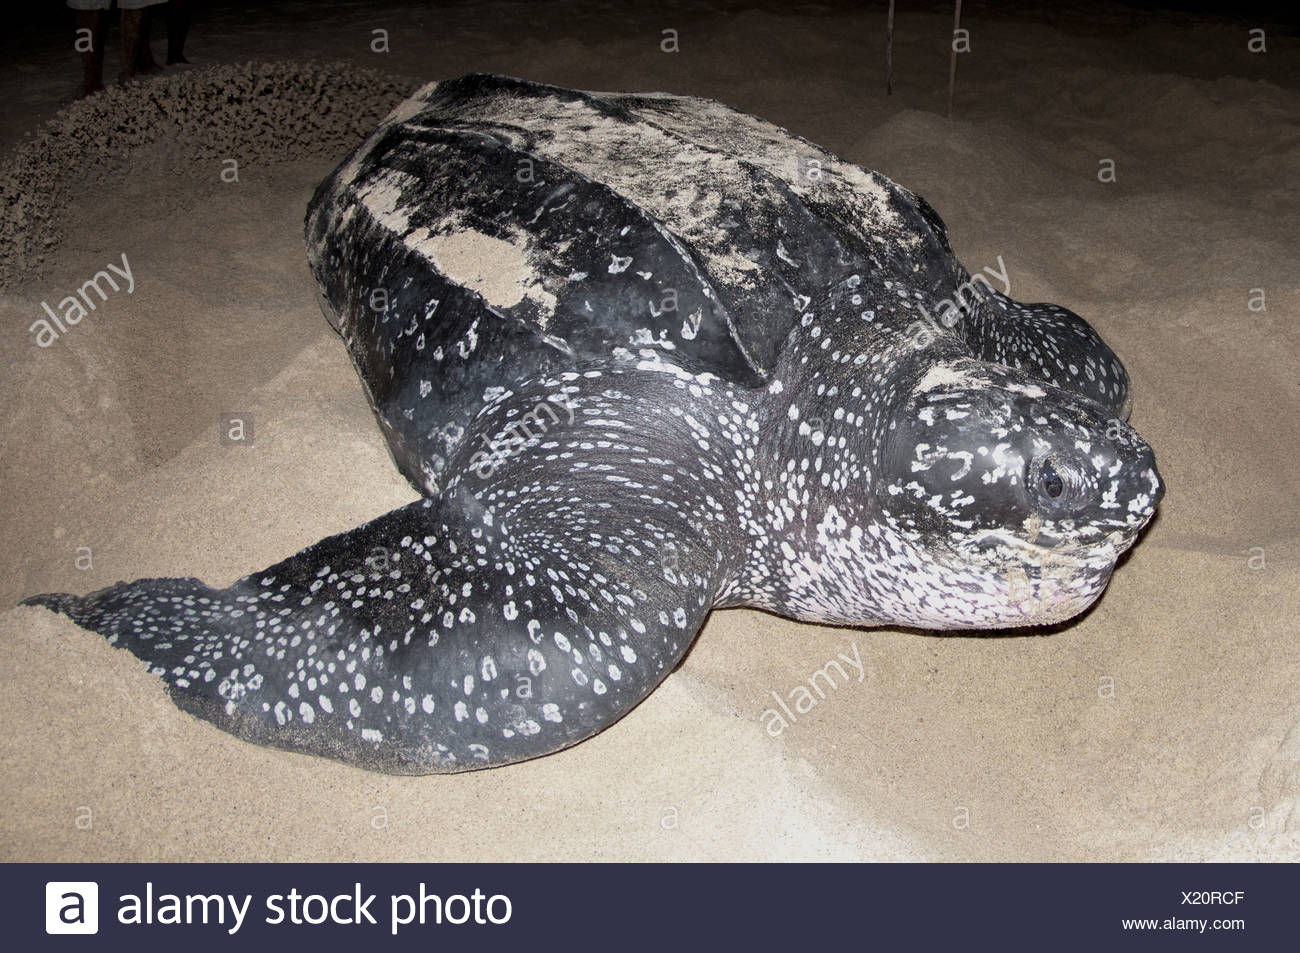 Leatherback Turtle (Dermochelys coriacea) adult female